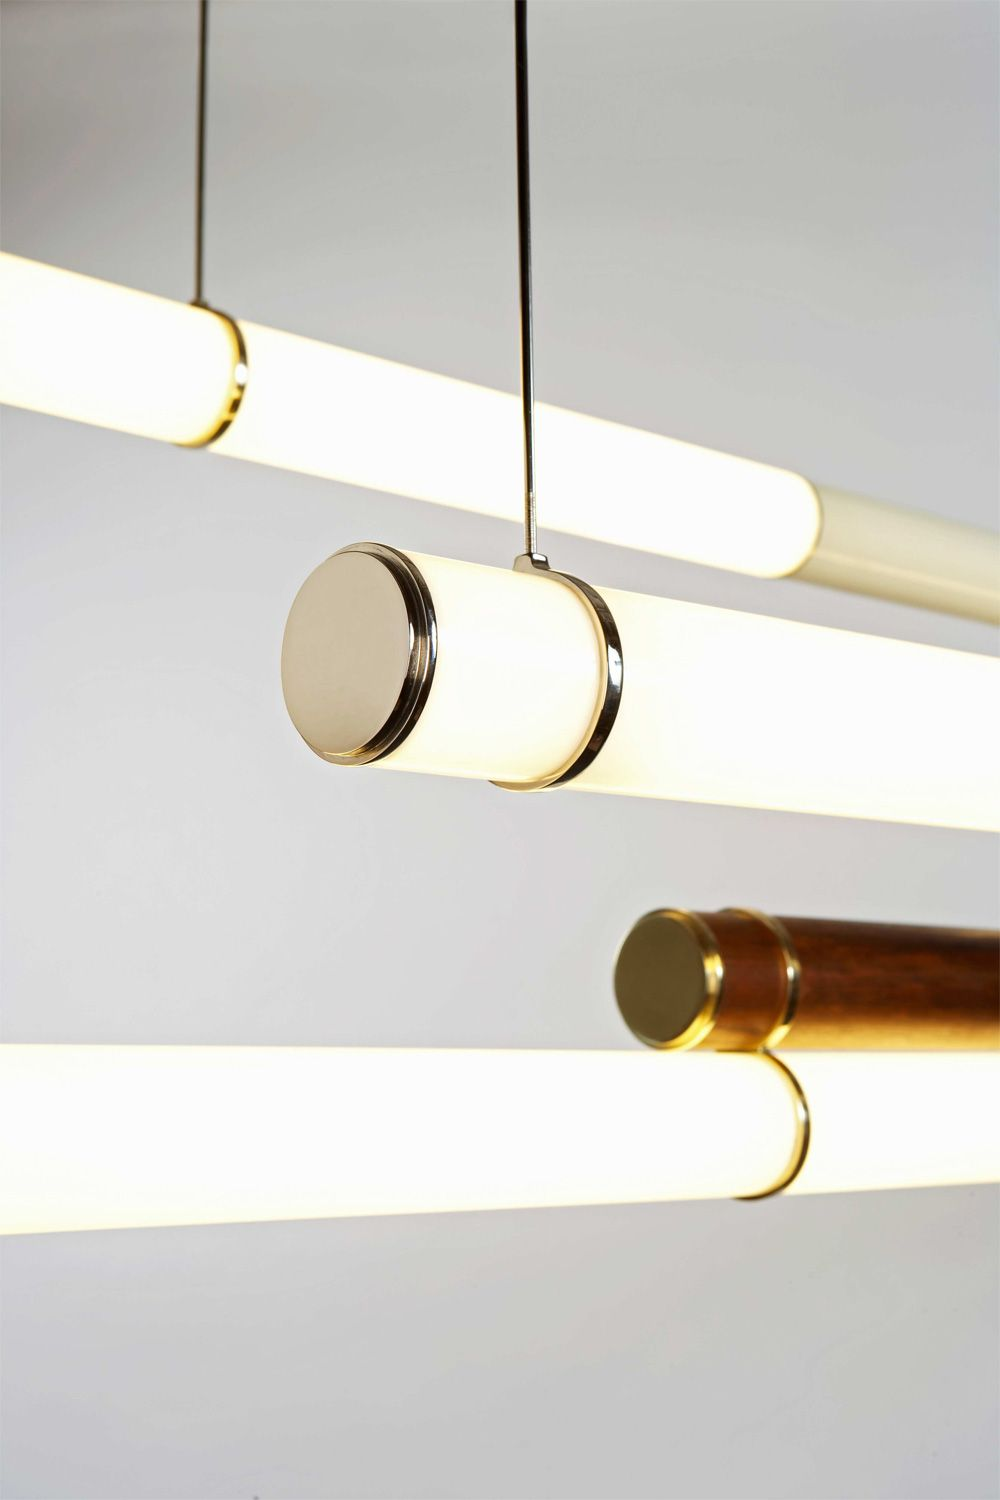 Lamp by jason miller let there be light pinterest lights lamp by jason miller let there be light pinterest lights hardware and light design arubaitofo Gallery